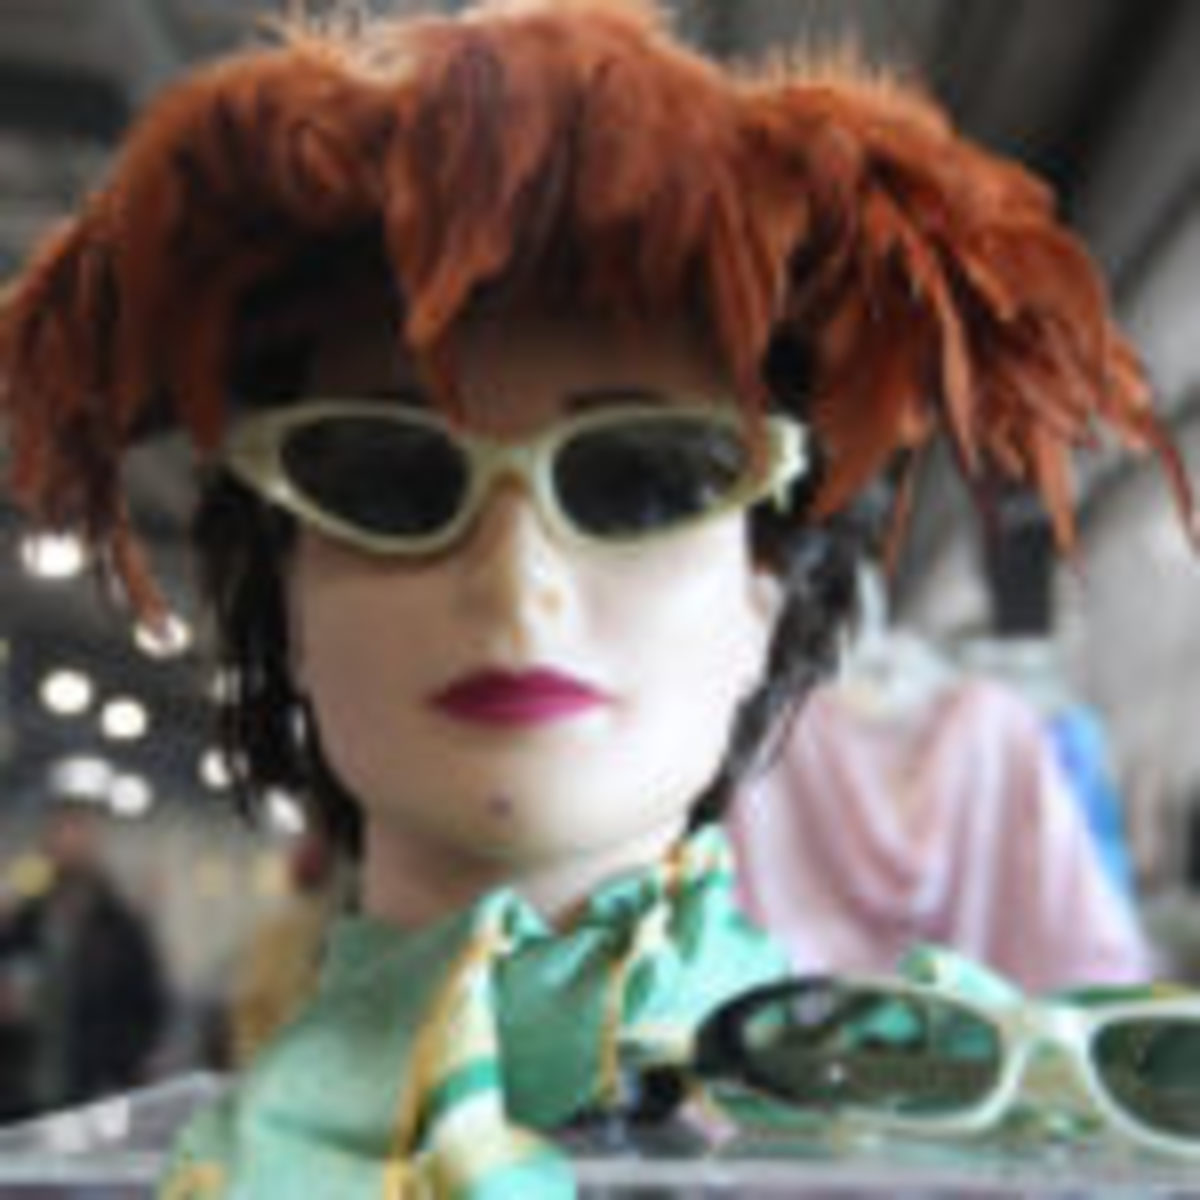 Vintage fashion treasures always can be found at Zurko's monthly Grayslake markets.